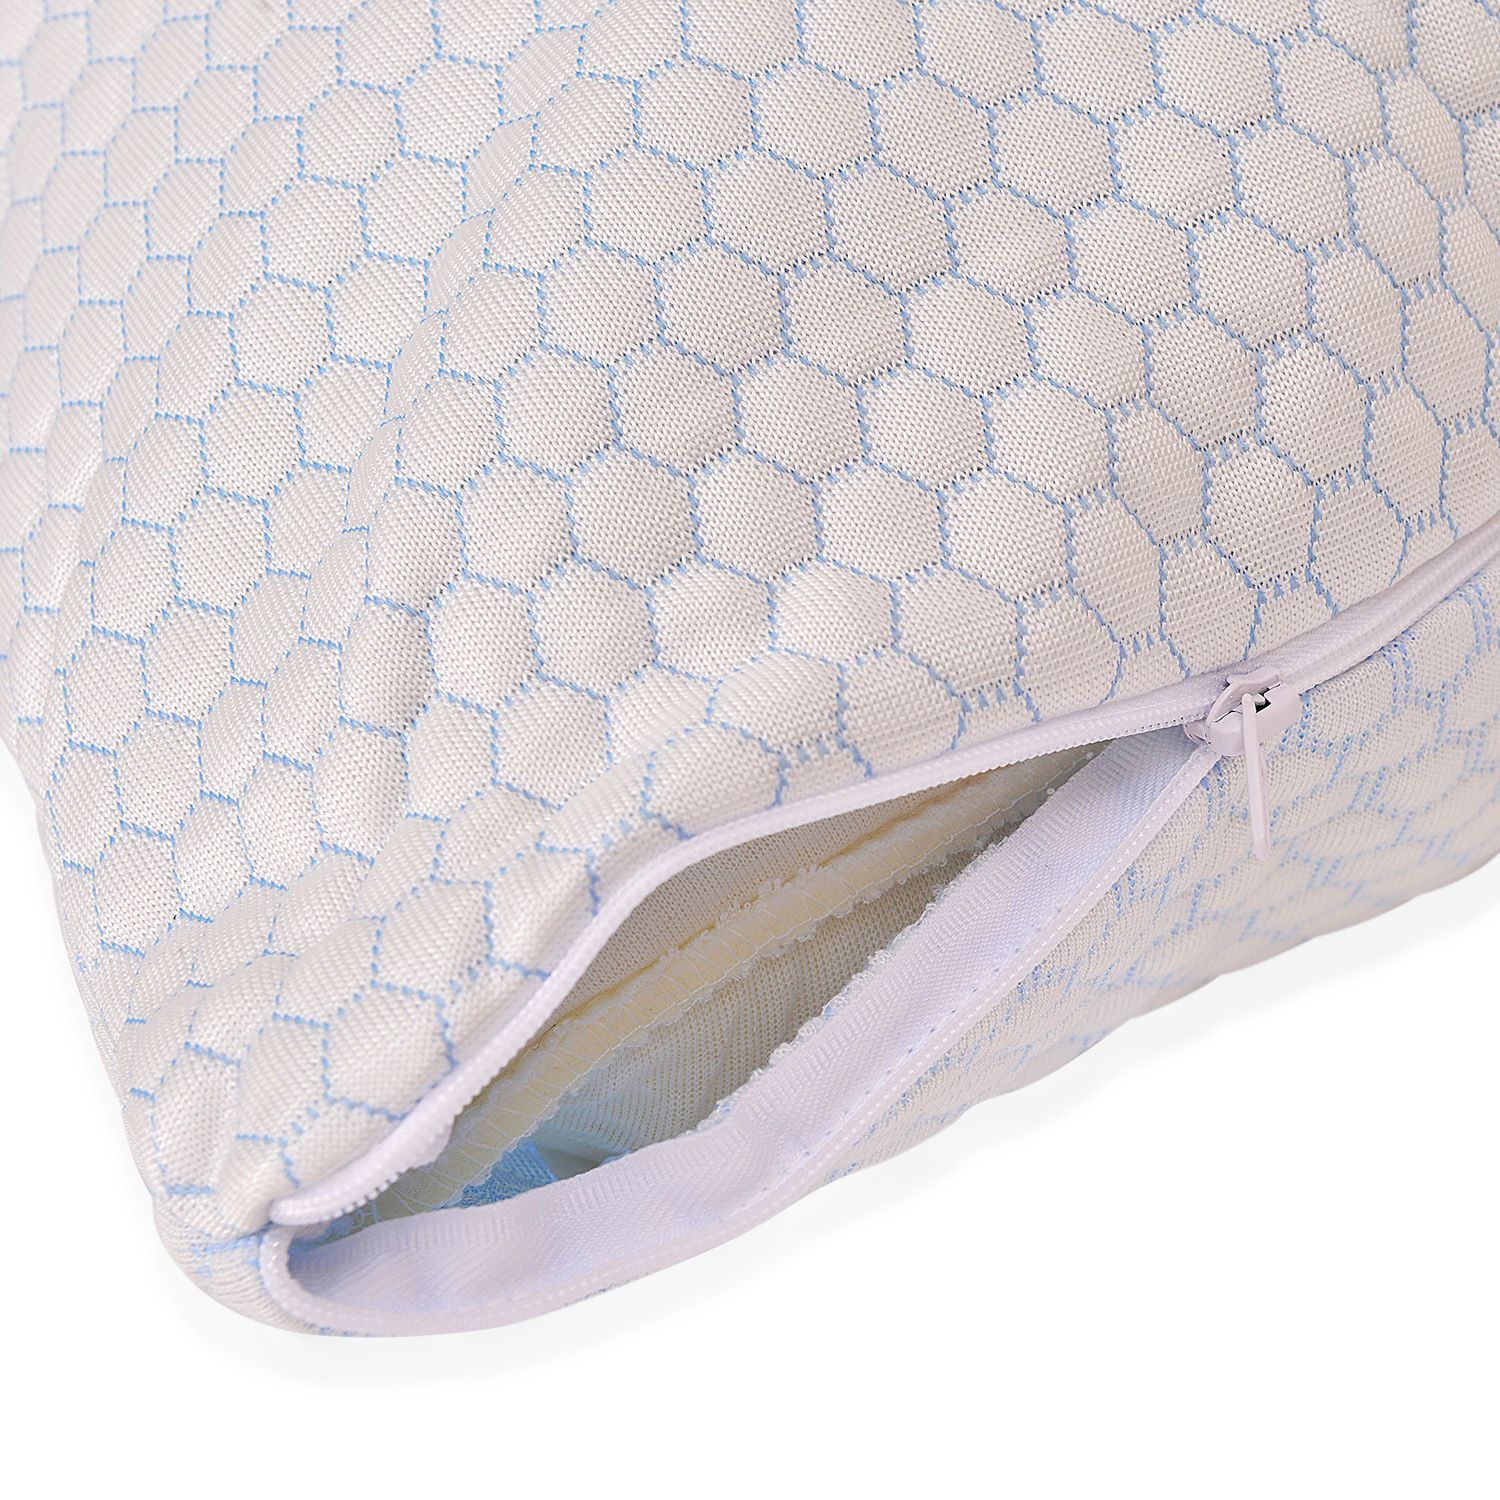 Warm and Cool Memory Foam Pillow